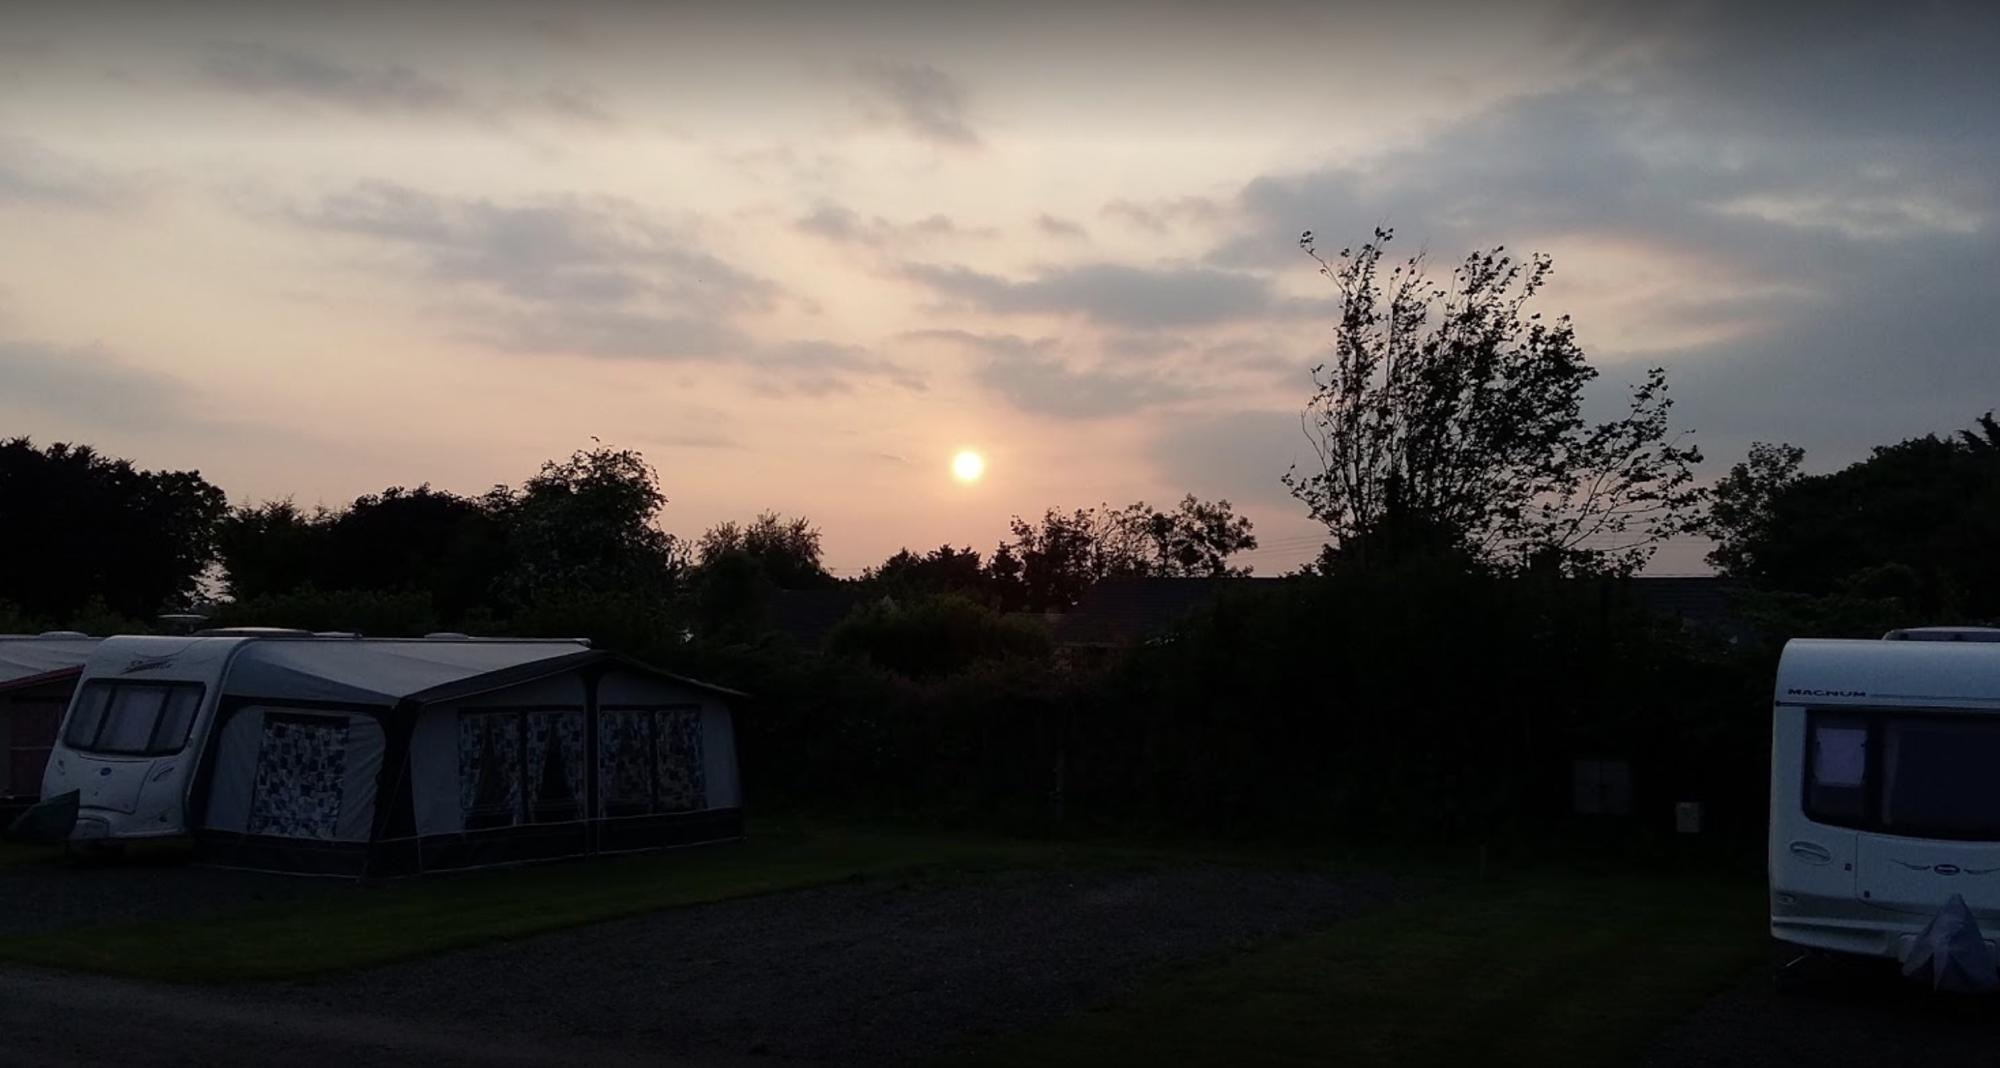 Holiday Parks in England – I Love This Campsite